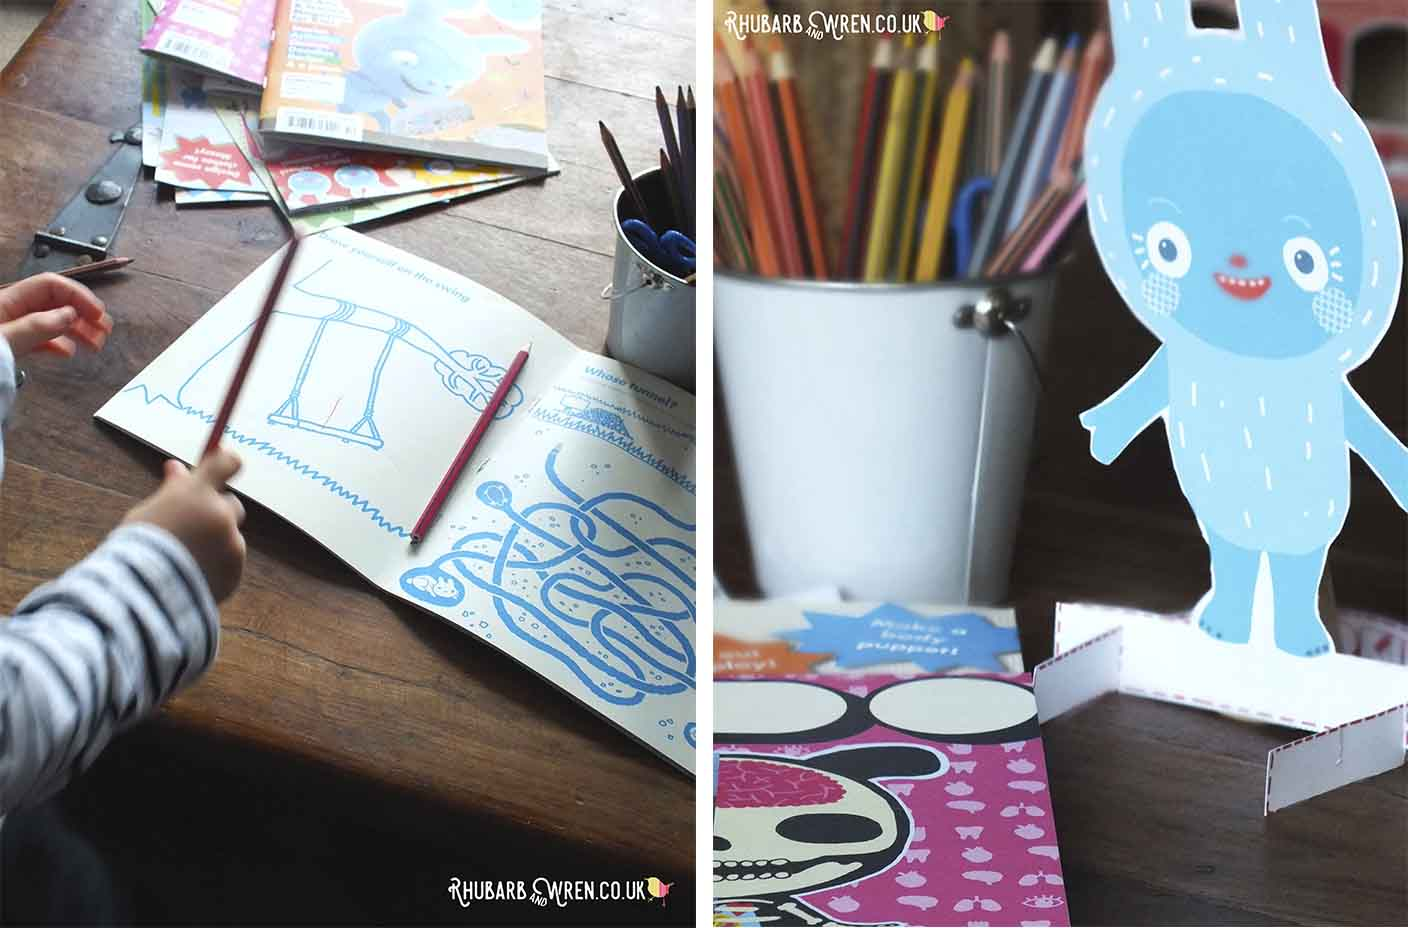 Open Okido magazine showing drawing activity, and cut-out Messy Monster